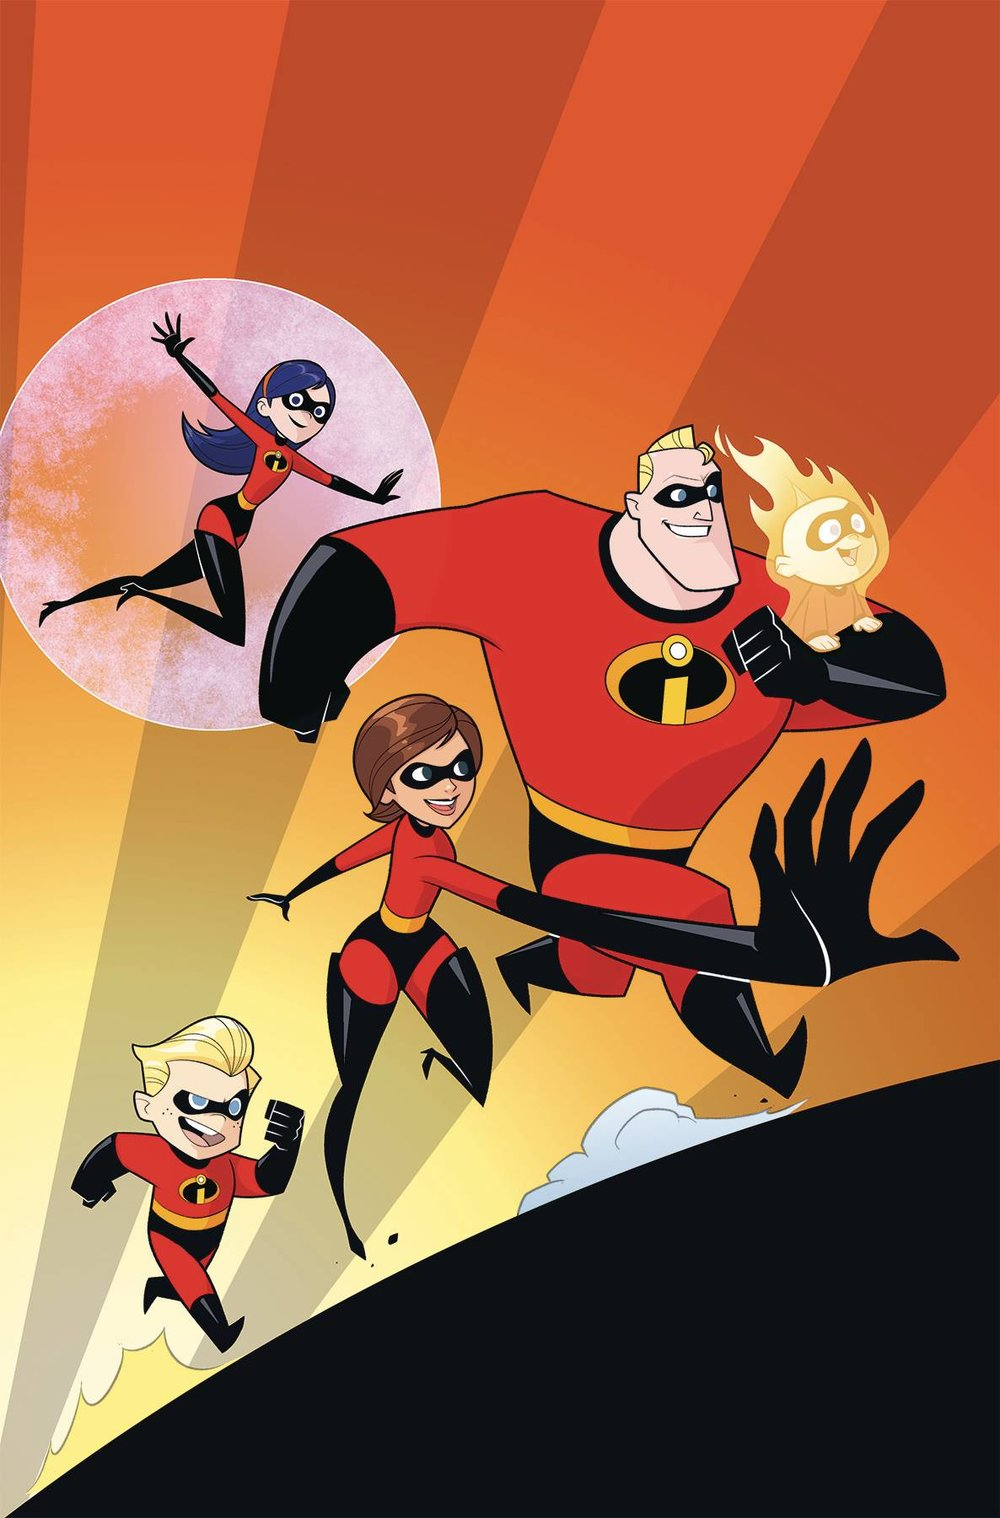 DISNEY INCREDIBLES 2 SECRET IDENTITIES 2 of 3 CVR B KAWAII CREATIVE STUDIO.jpg